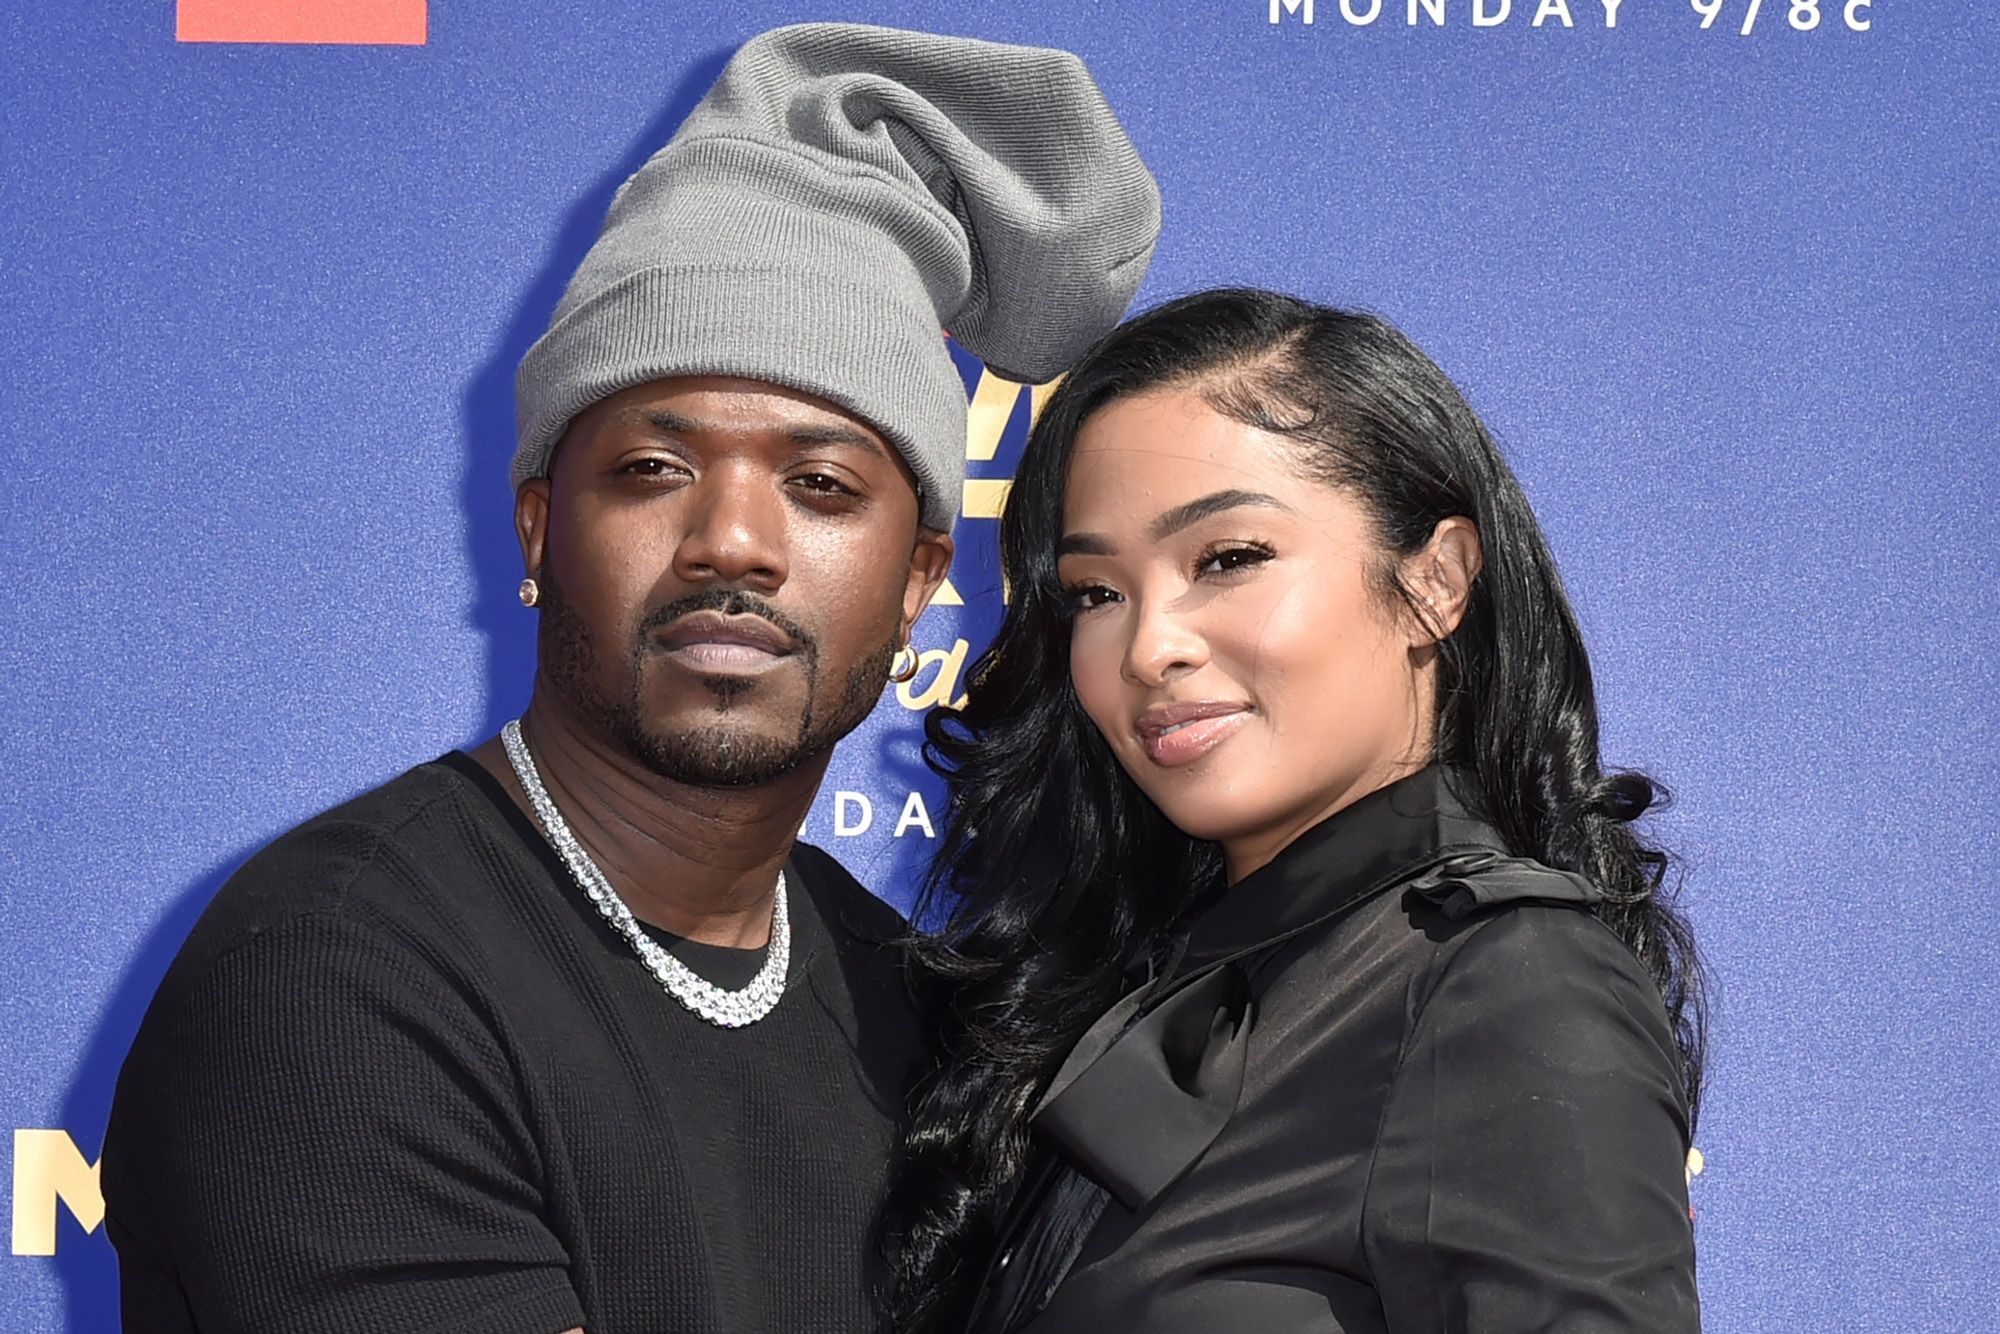 ray-j-and-princess-love-back-together-under-the-same-roof-months-after-he-filed-for-divorce